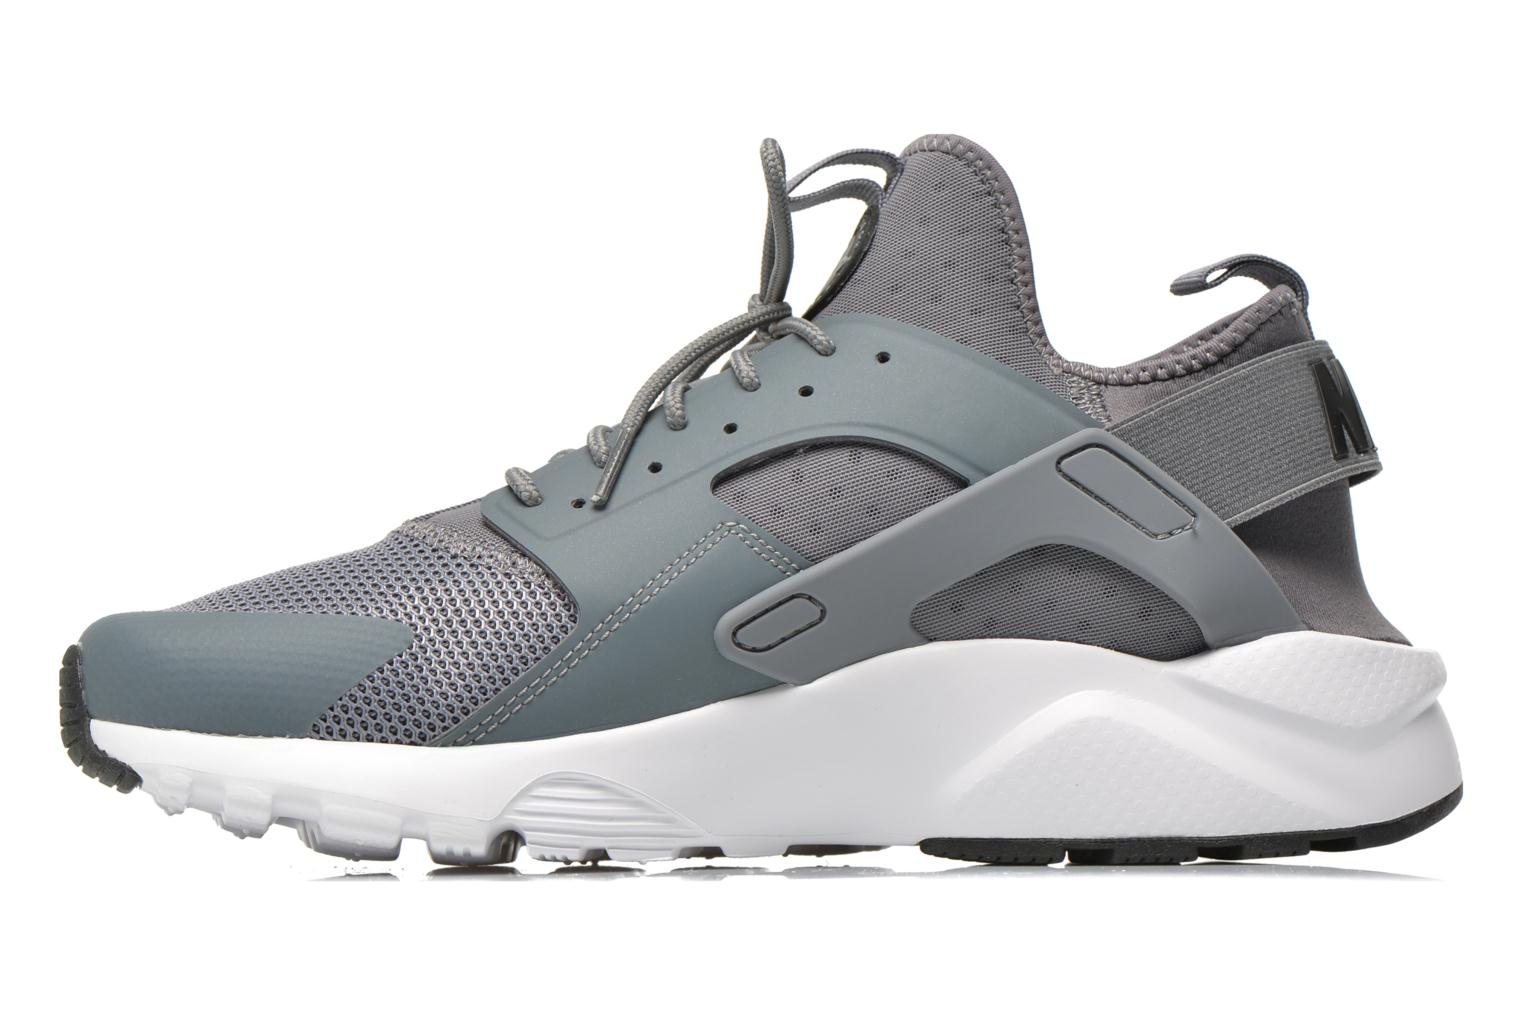 Nike Air Huarache Run Ultra Cool Grey/Black-White